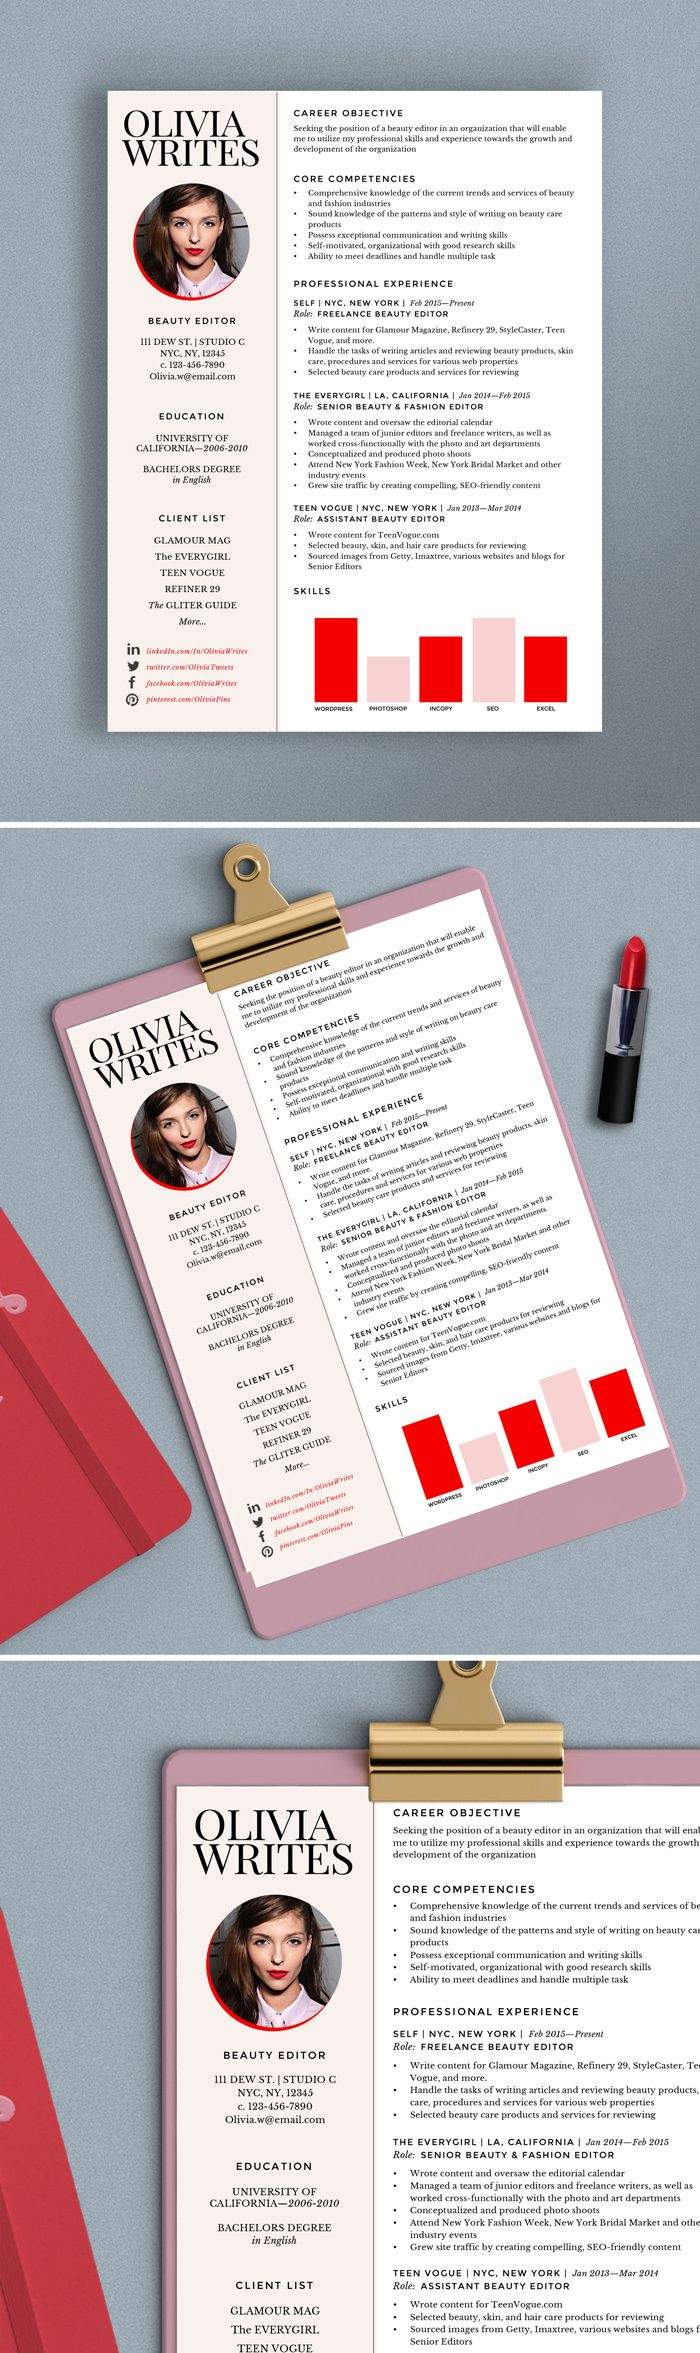 best ideas about fashion resume fashion cv cv fully editable modern feminine reacutesumeacute template design beauty editor fashion editor writer